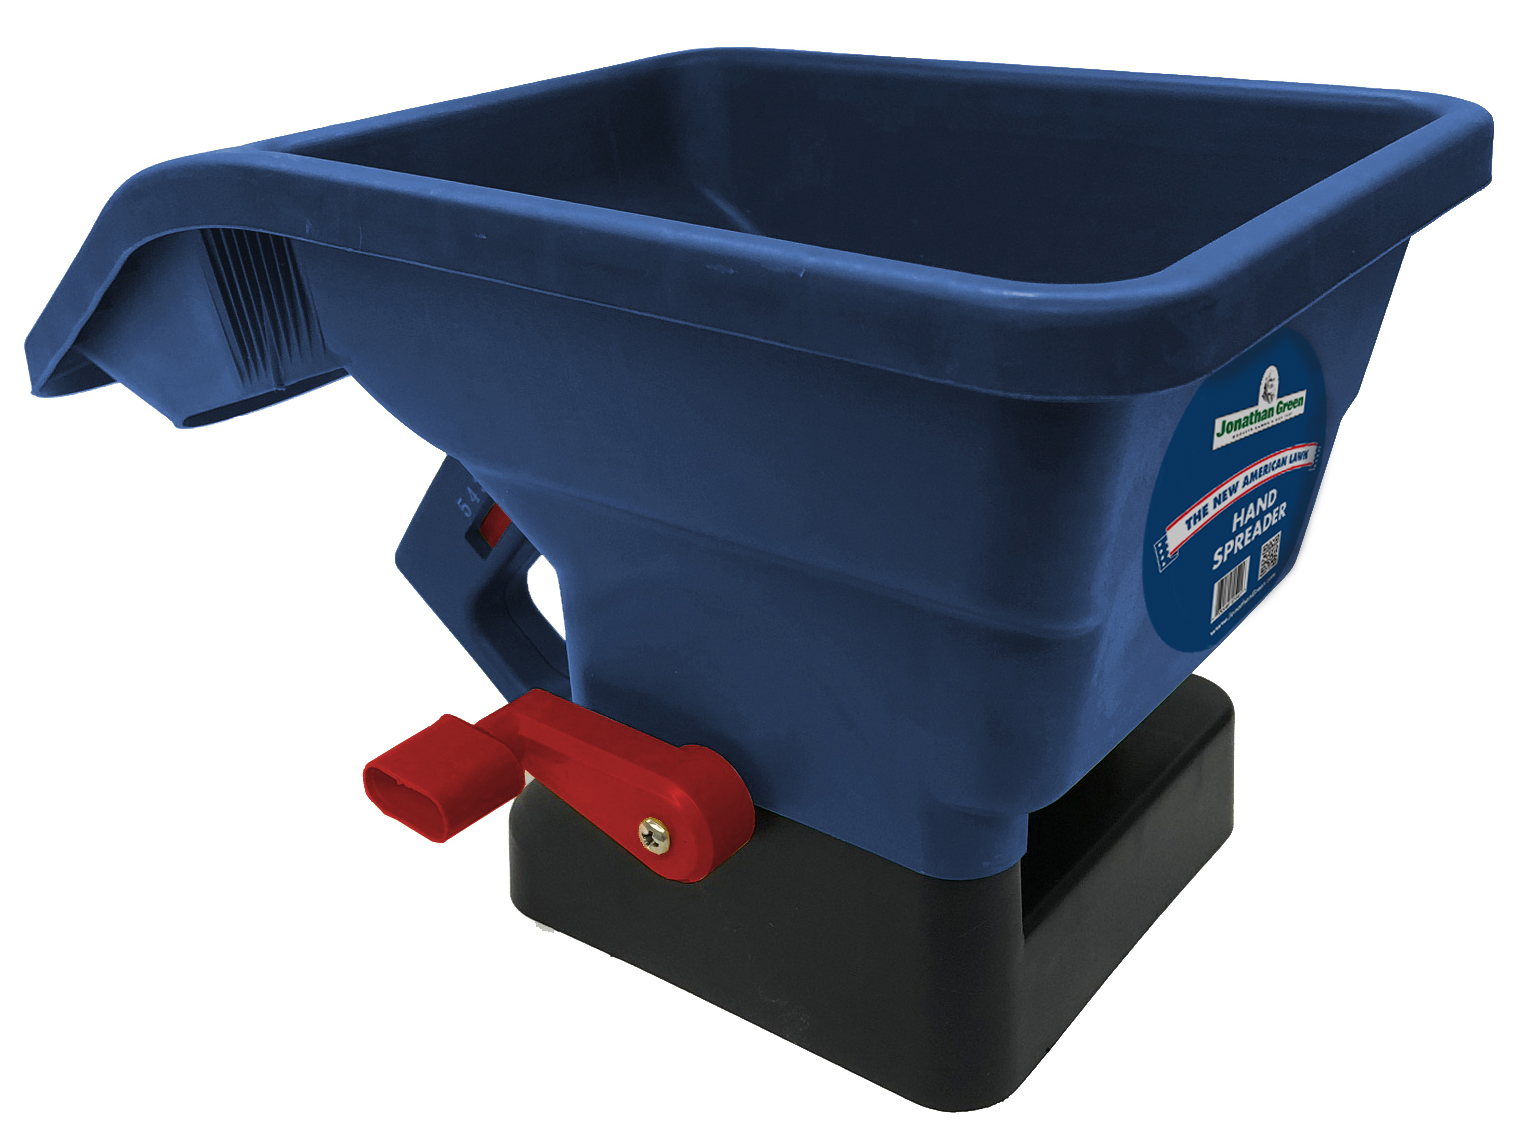 New American Lawn Hand Spreader